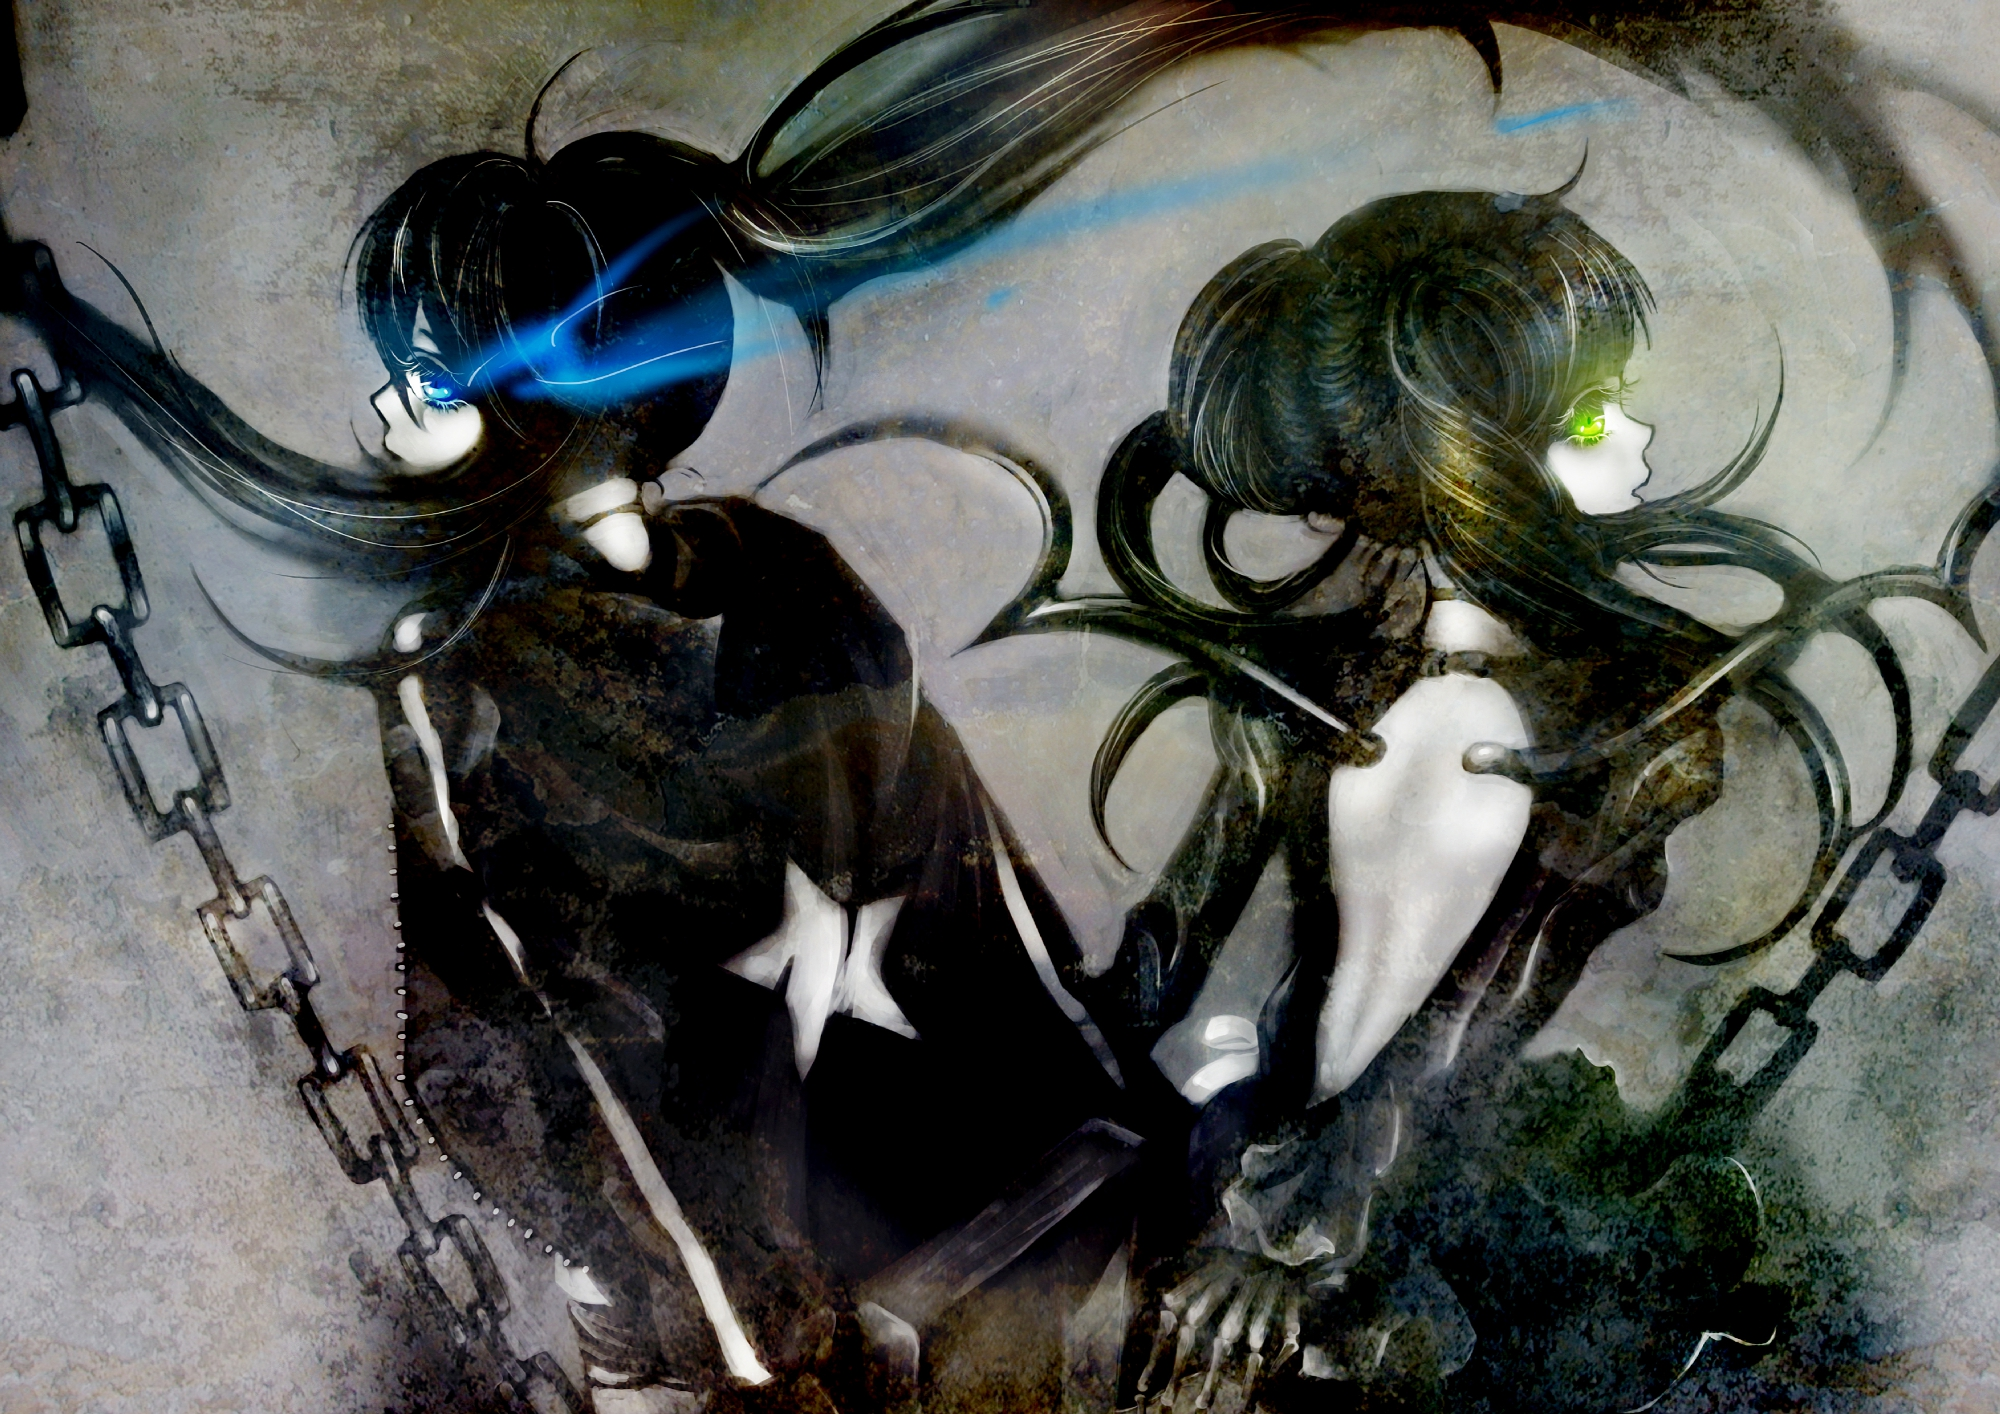 black_rock_shooter chain kuroi_mato takanashi_yomi wings